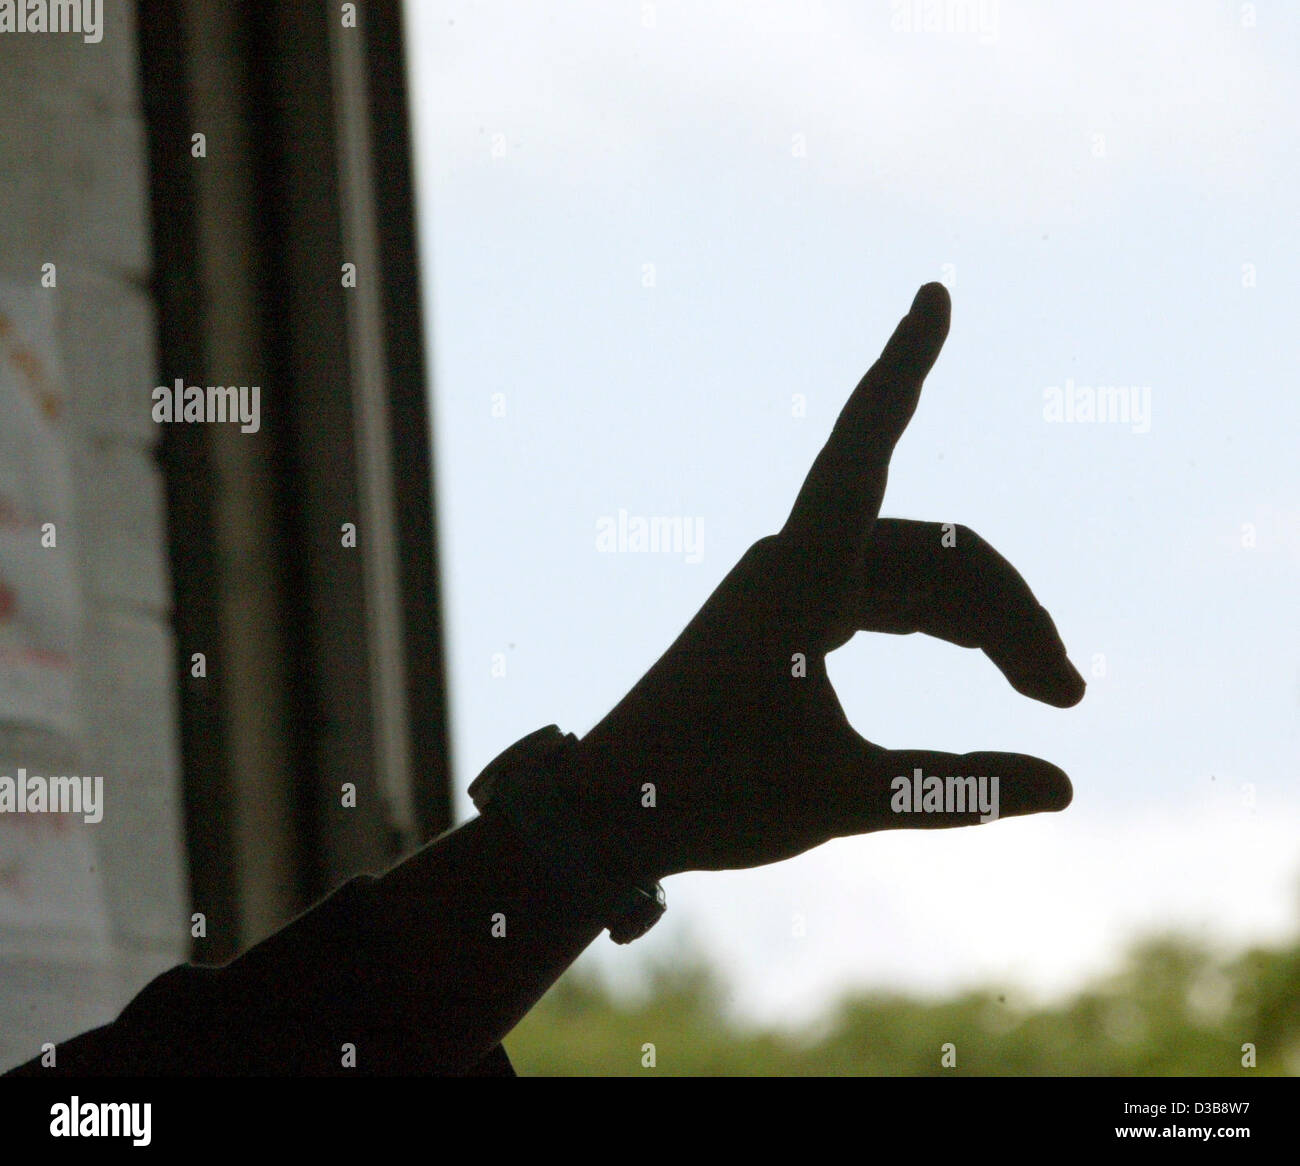 (dpa) - A student's finger is in the air to indicate the request to speak at the Stauding Full-time Comprehensive - Stock Image